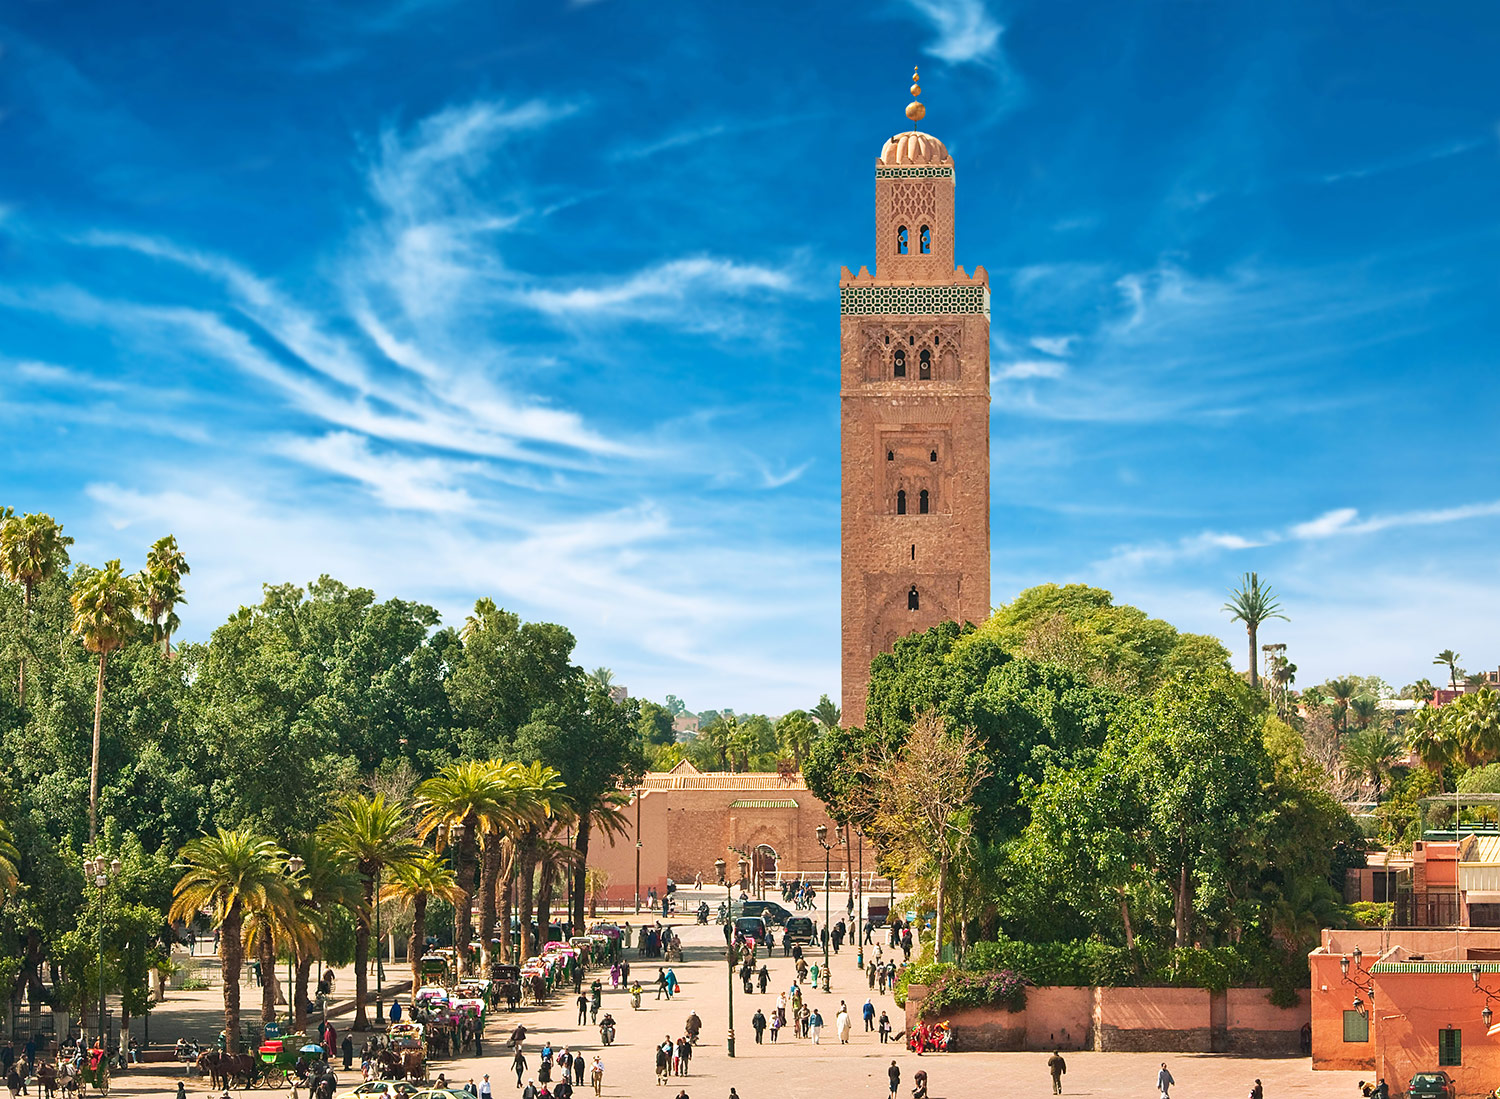 Urban-Adventures-Morocco_Marrakech_Mosque_Landmark_Cityscape.jpg